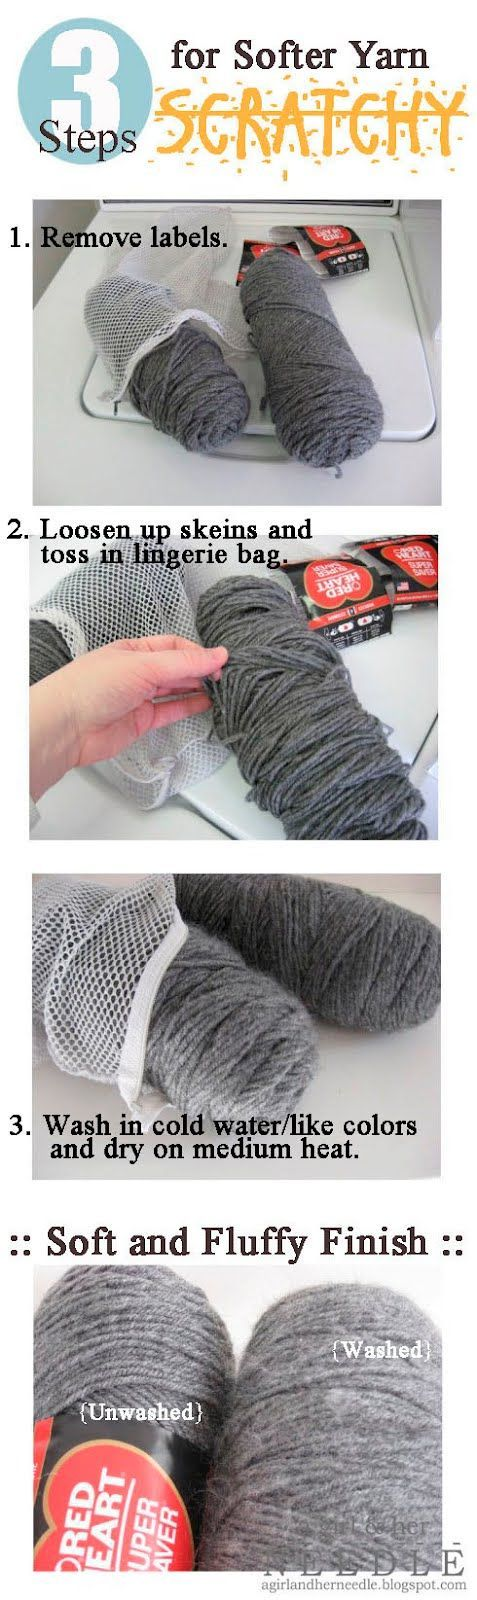 20 Clever Yarn Hacks That Will Make Your Next Project Easier